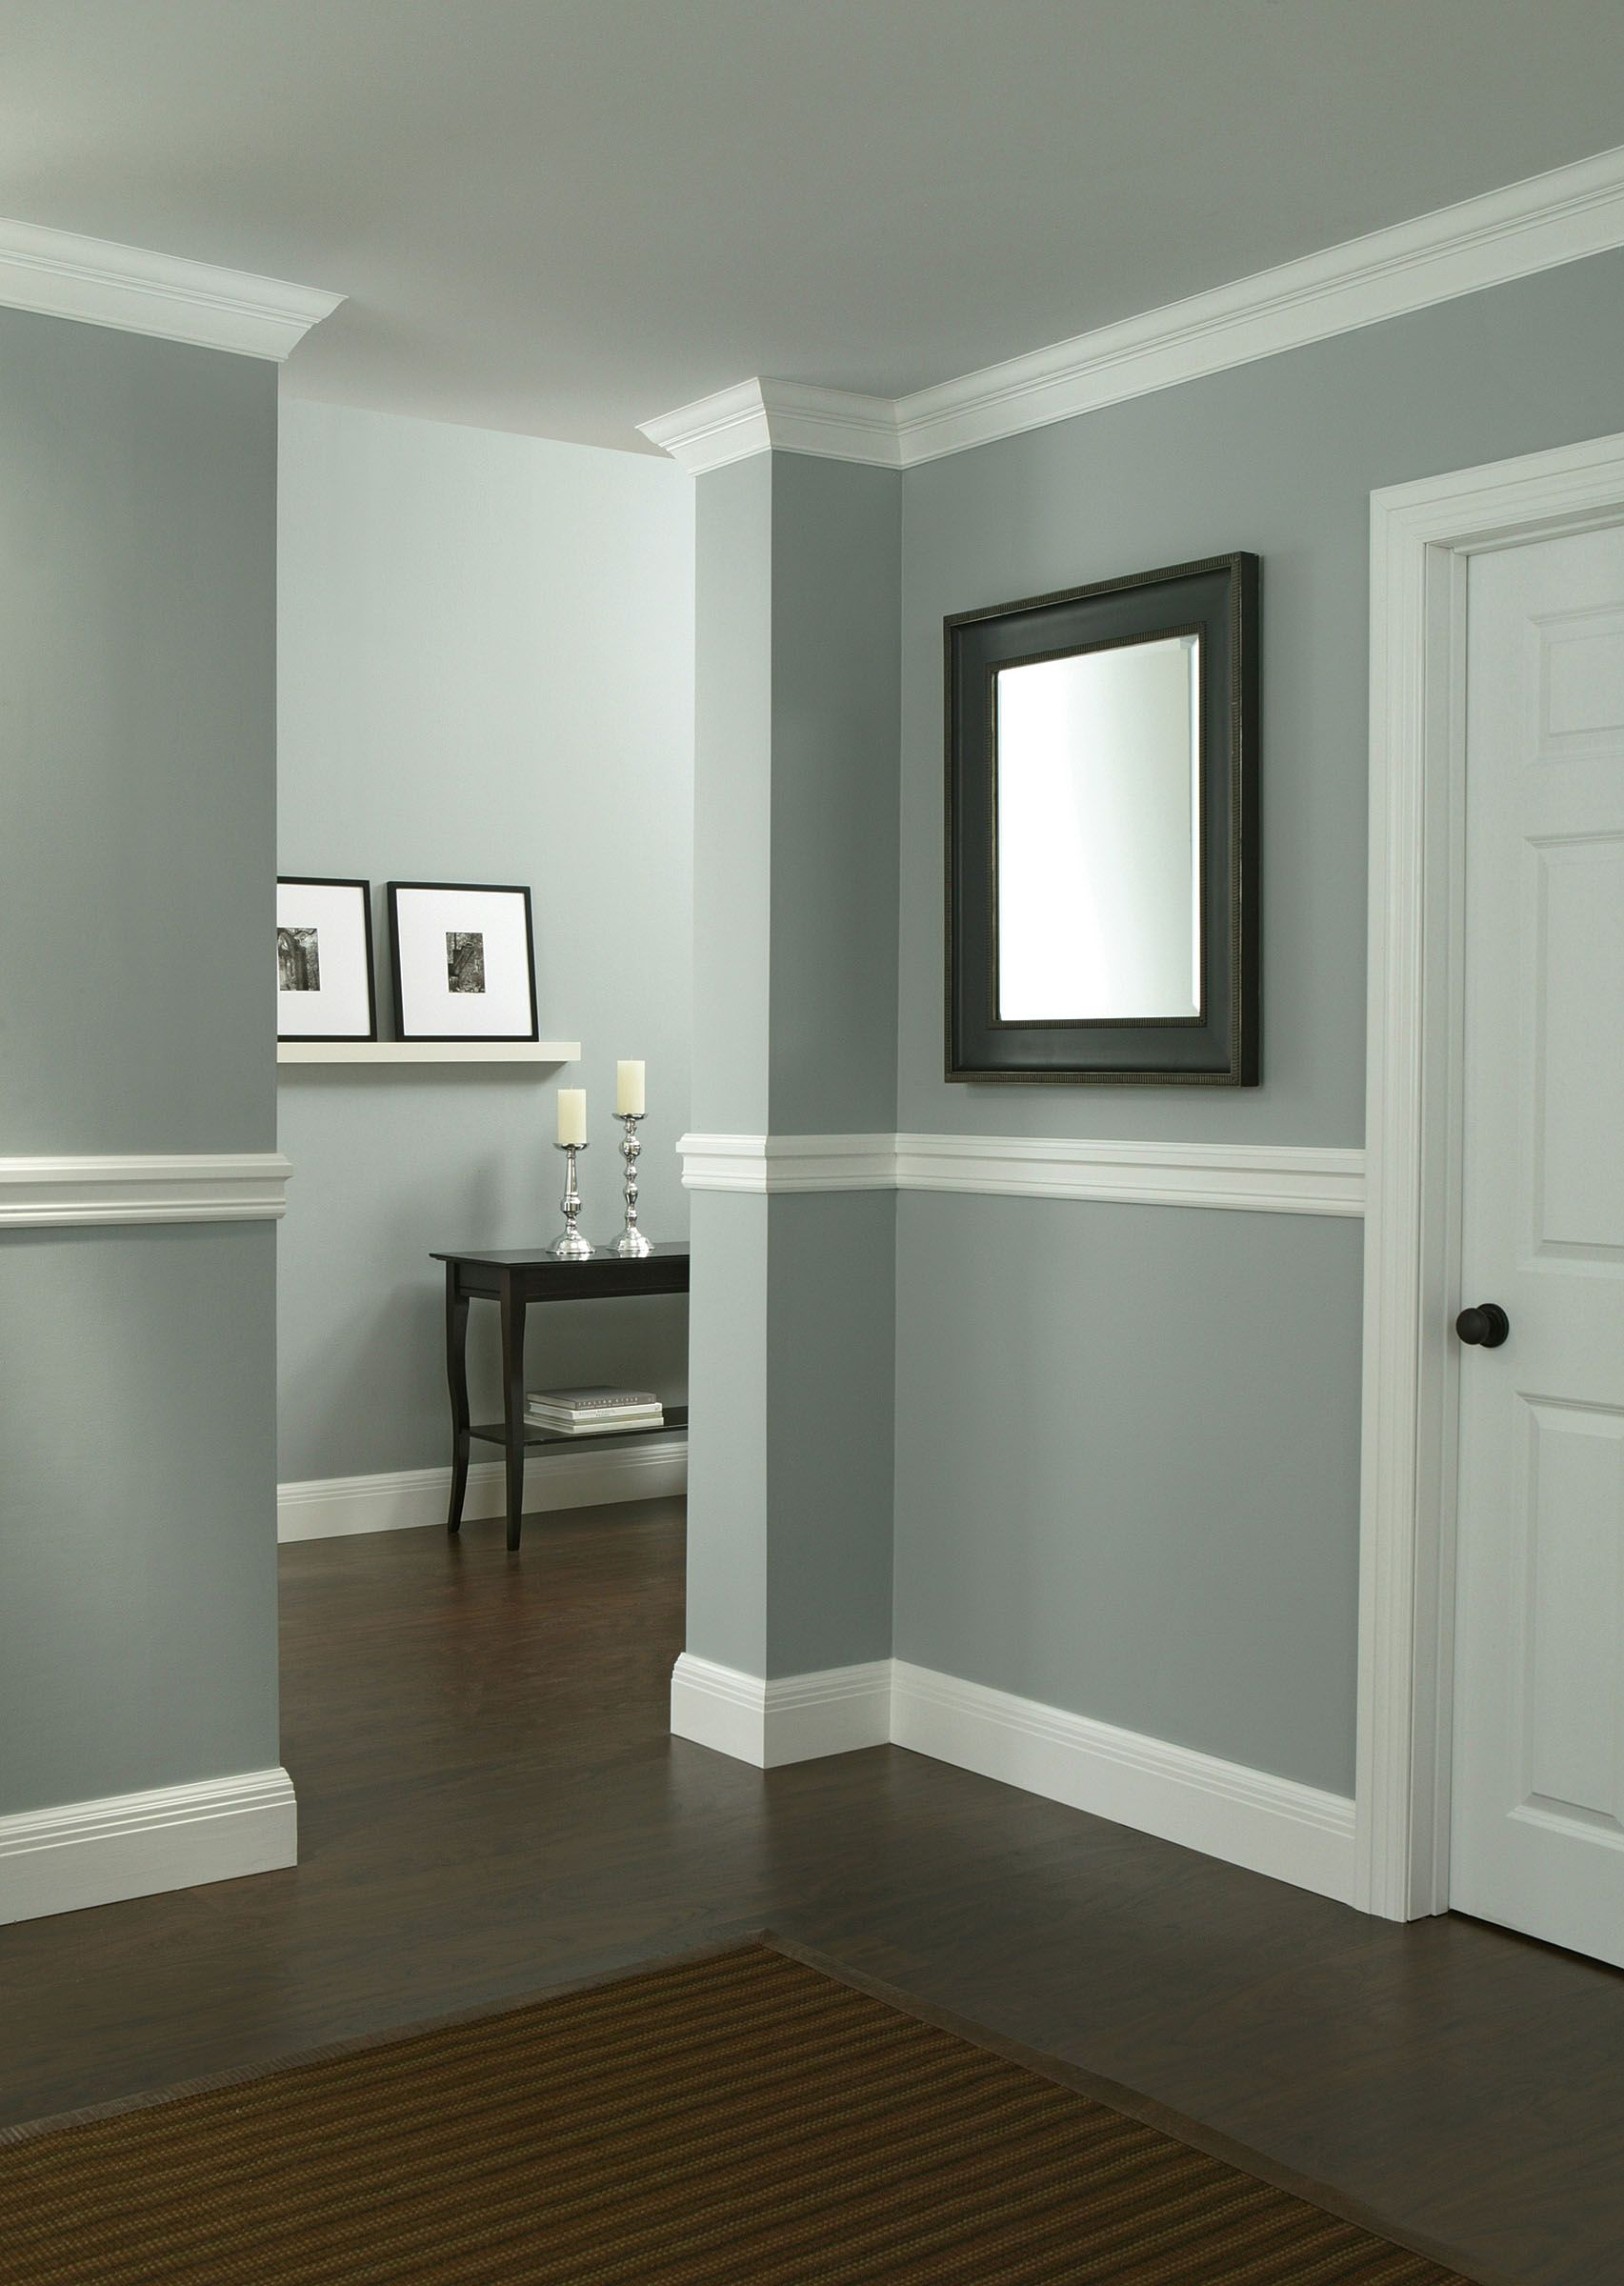 Elegant Best 25+ Molding Ideas Ideas On Pinterest | Baseboard Installation,  Wainscoting Height And Crown Molding Mirror